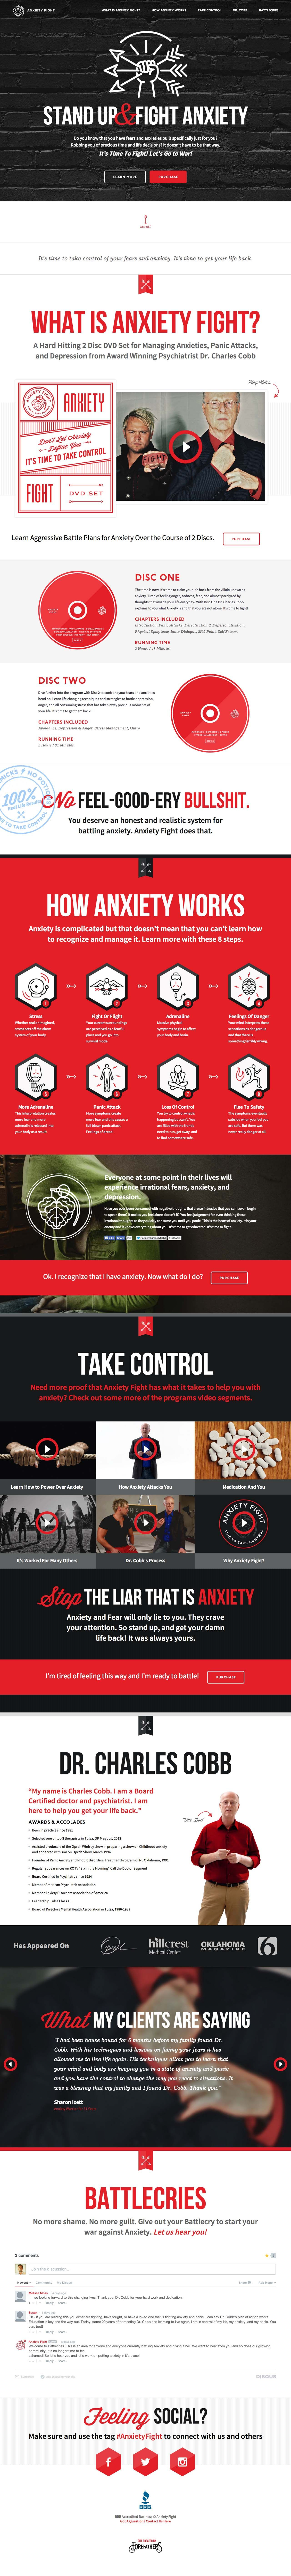 Responsive one pager in a dark grey and red color scheme for a DVD set aimed to help fight anxiety issues. The long site features some neat illustrations and does a great job at arranging a lot of content + videos all the way down to small screens. I can image this kind of client/product/topic is tough to pull off with design but I think the Forefathers Group have done a good job here.